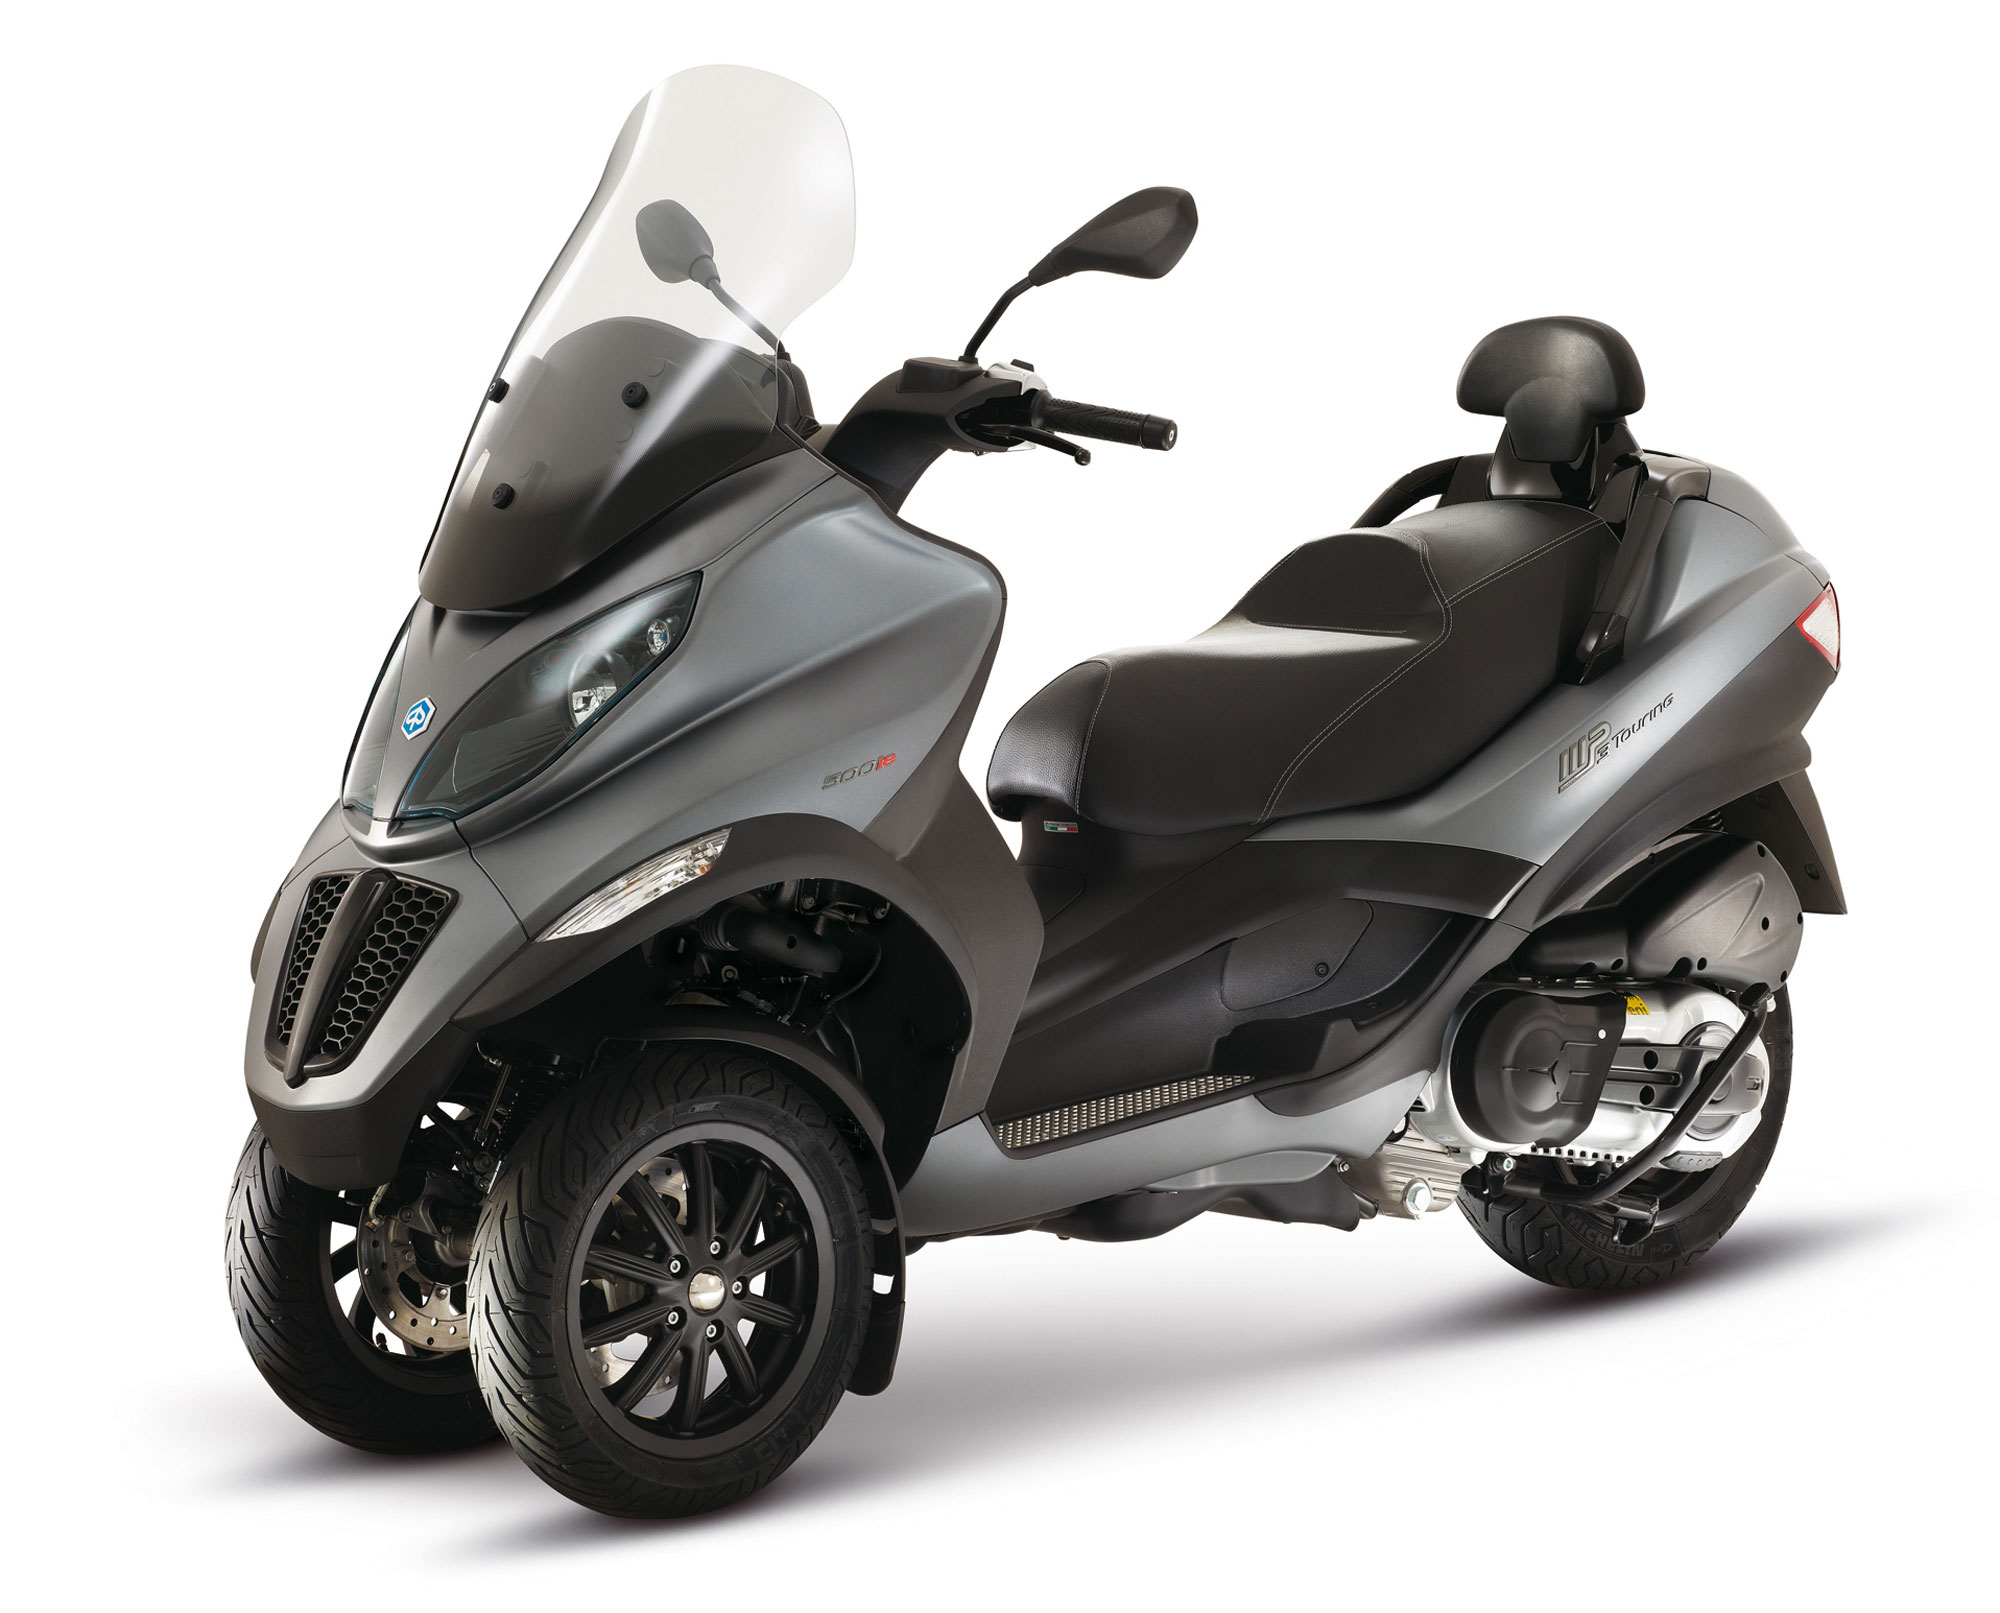 2011 piaggio mp3 500 pics specs and information. Black Bedroom Furniture Sets. Home Design Ideas